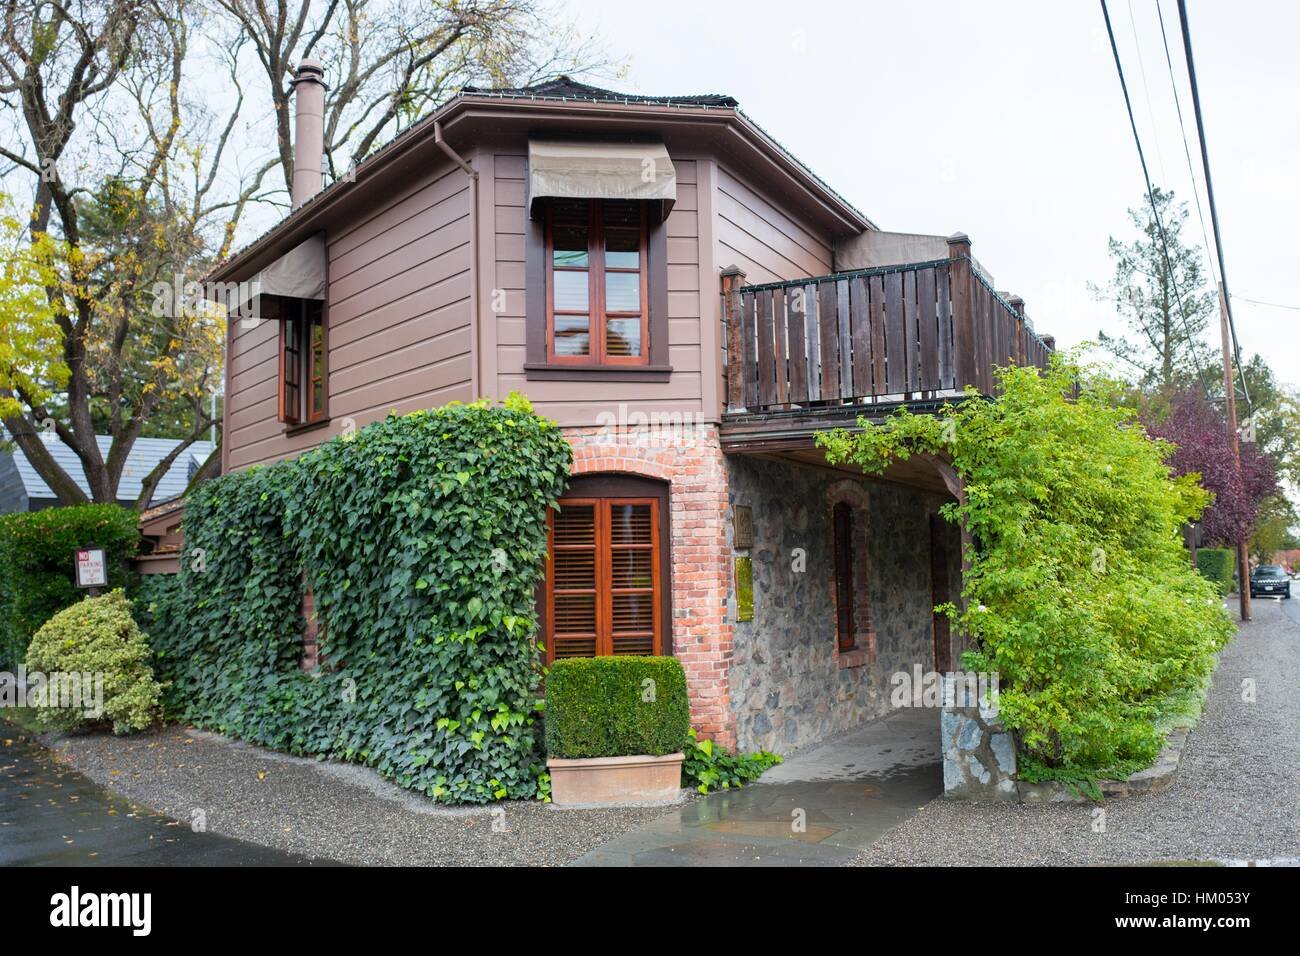 Facade Of The French Laundry Restaurant In Yountville Napa Valley Stock Photo Alamy